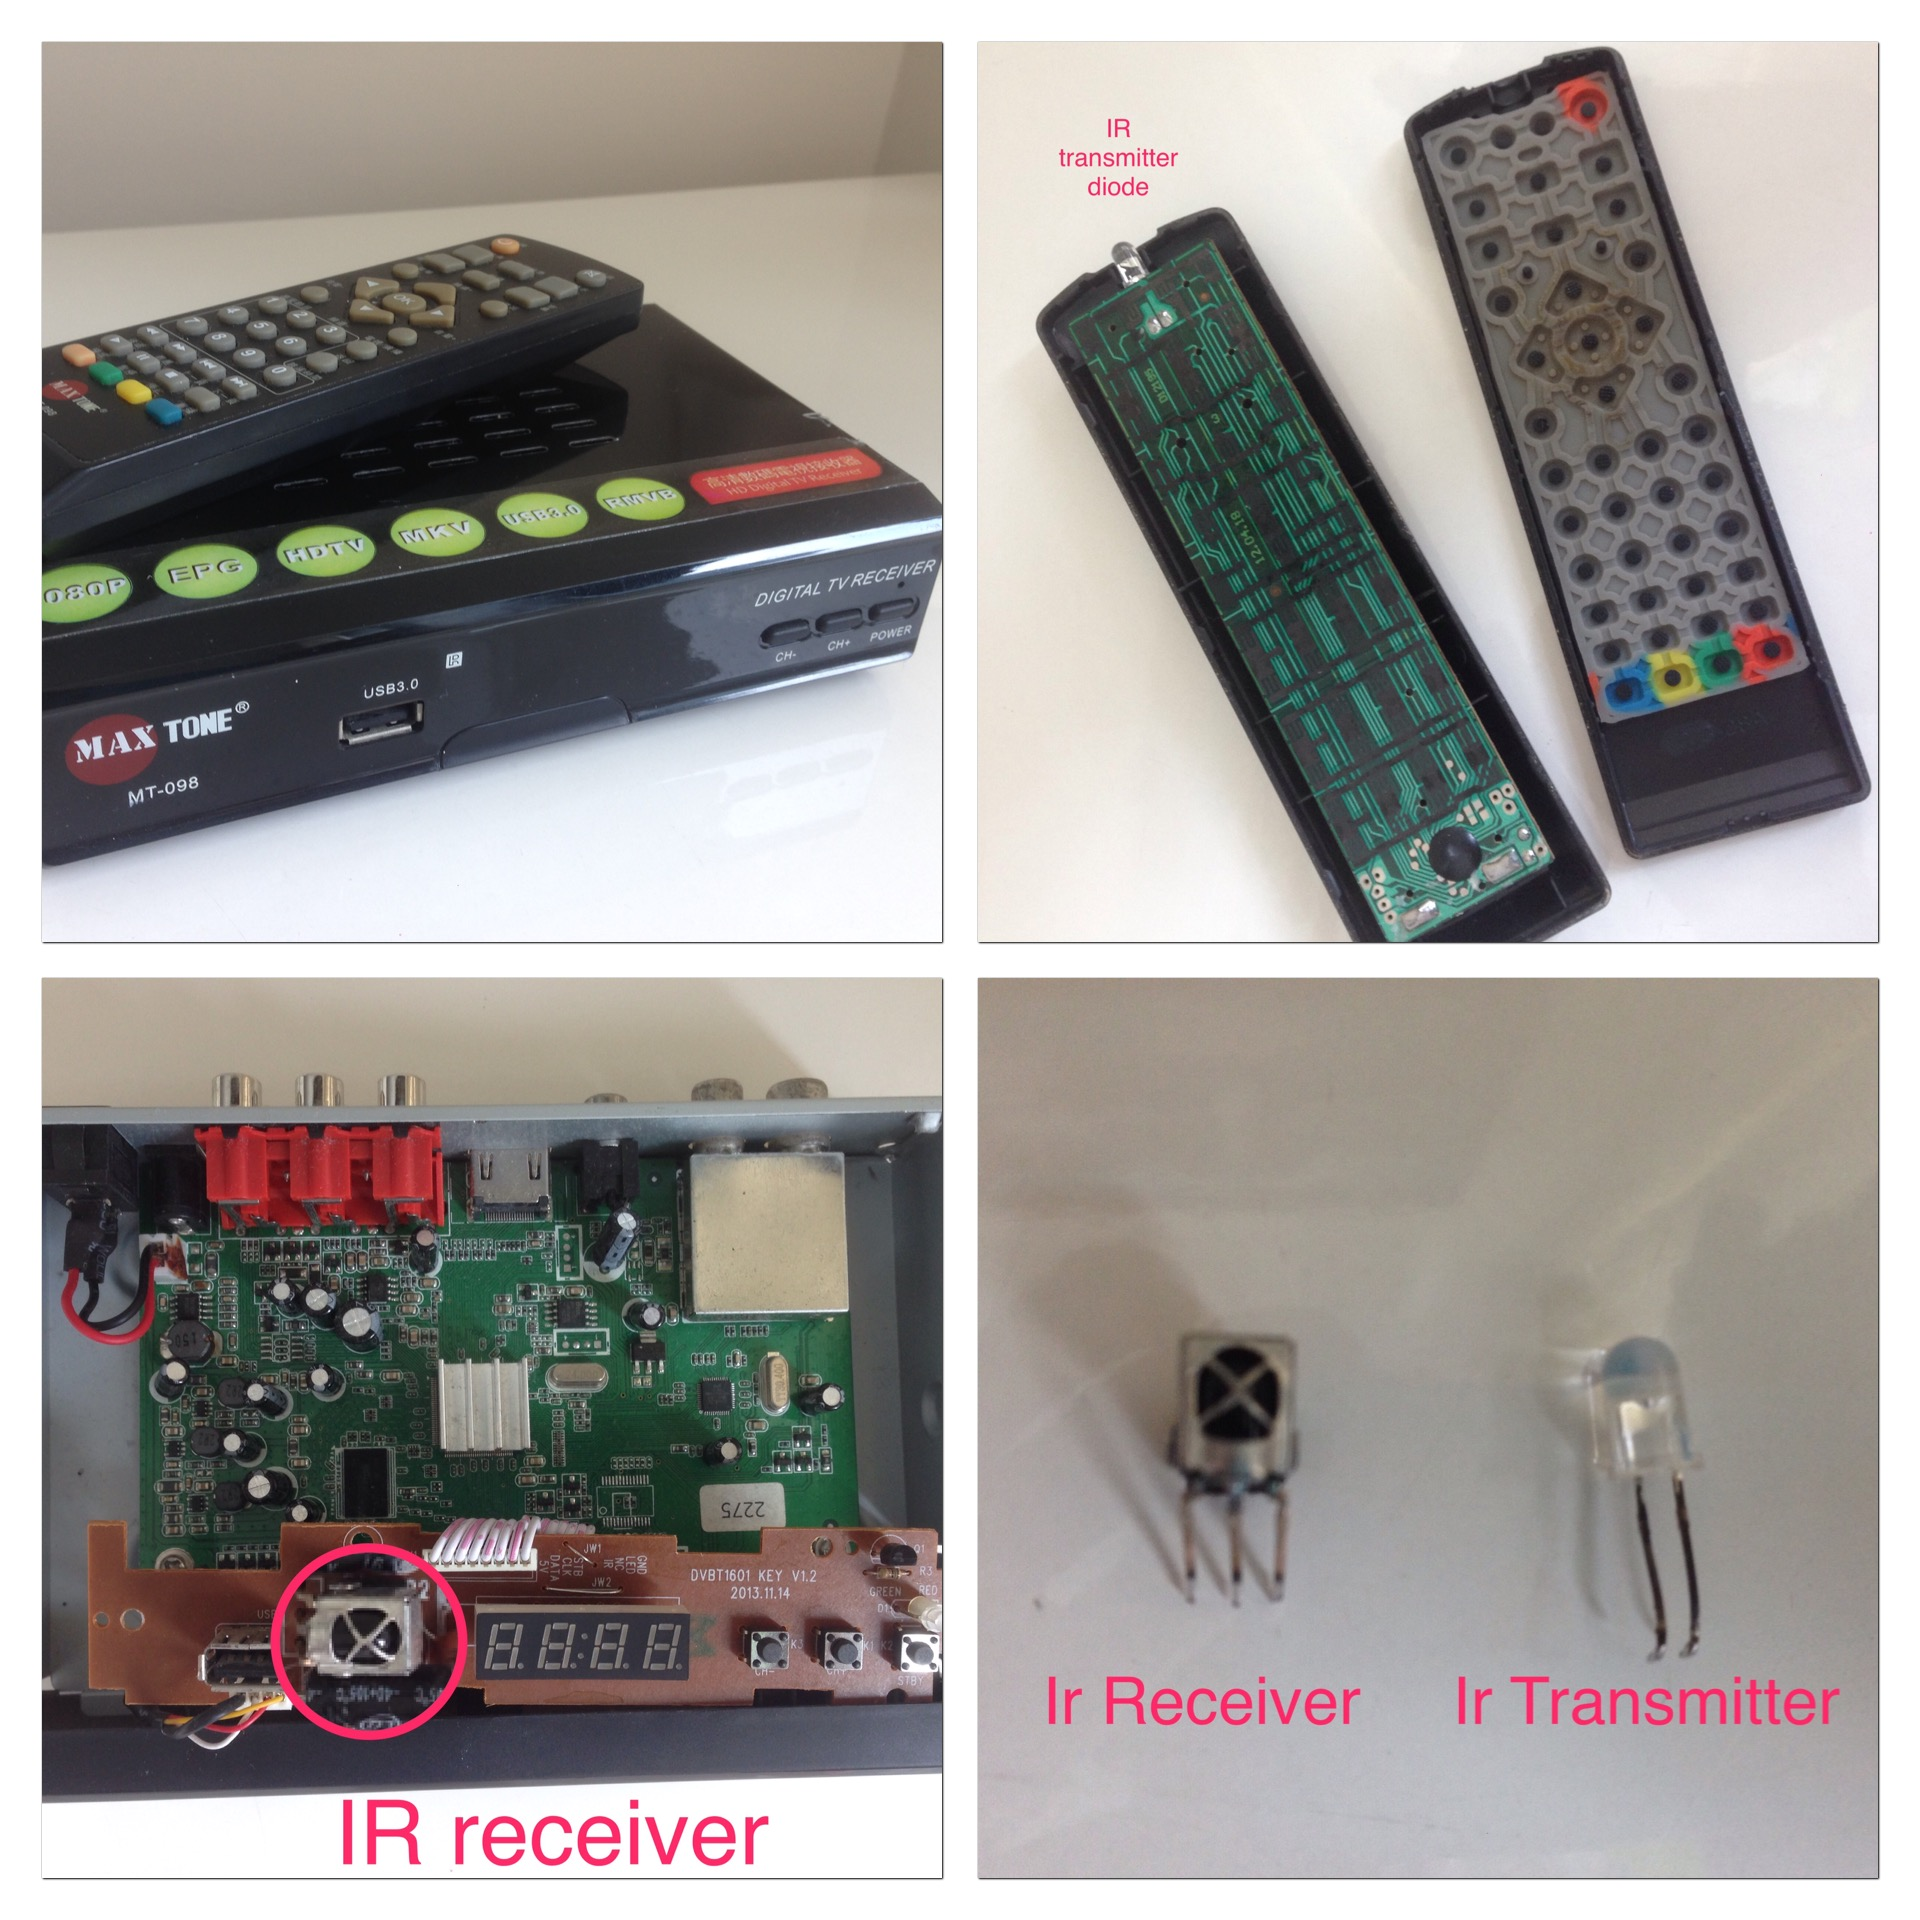 ir diode and receiver from old settop box